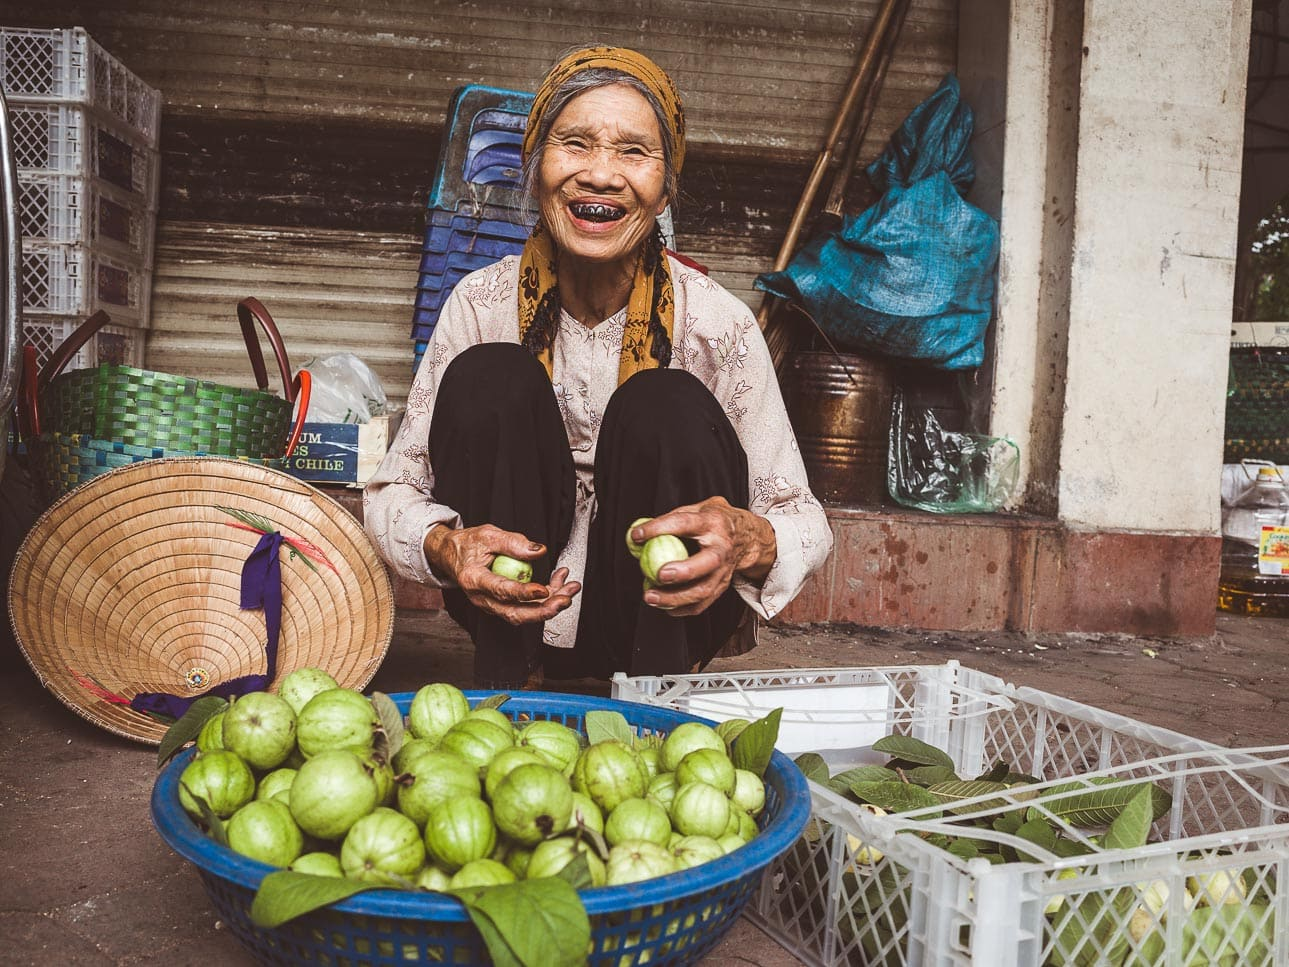 A smiling woman sells guava on the street in Hanoi, Vietnam